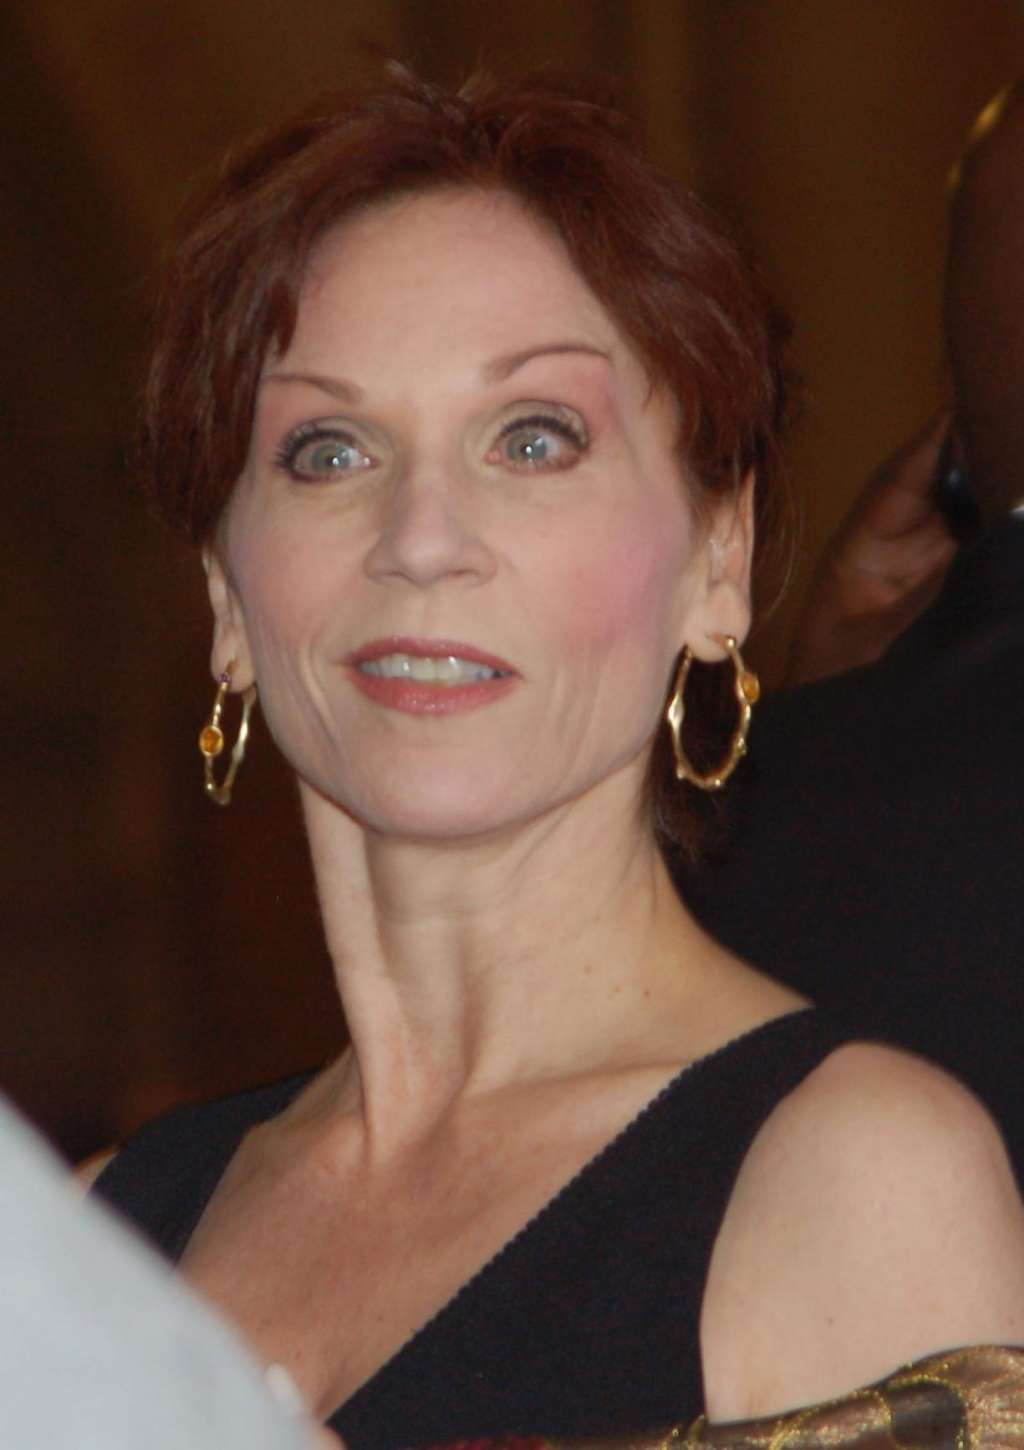 Marilu Henner born April 6, 1952 (age 66) nudes (55 photos), Pussy, Sideboobs, Twitter, cleavage 2006